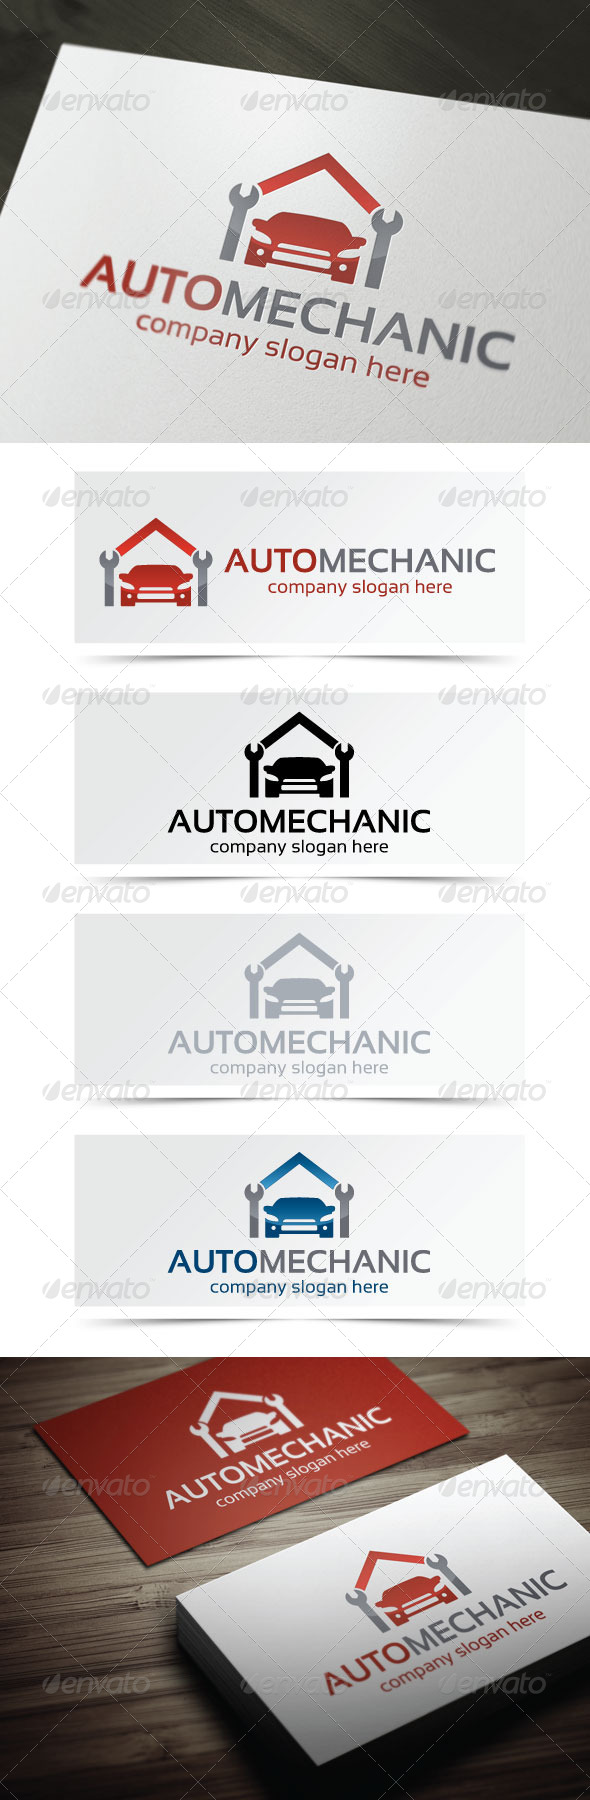 GraphicRiver Auto Mechanic 4623396